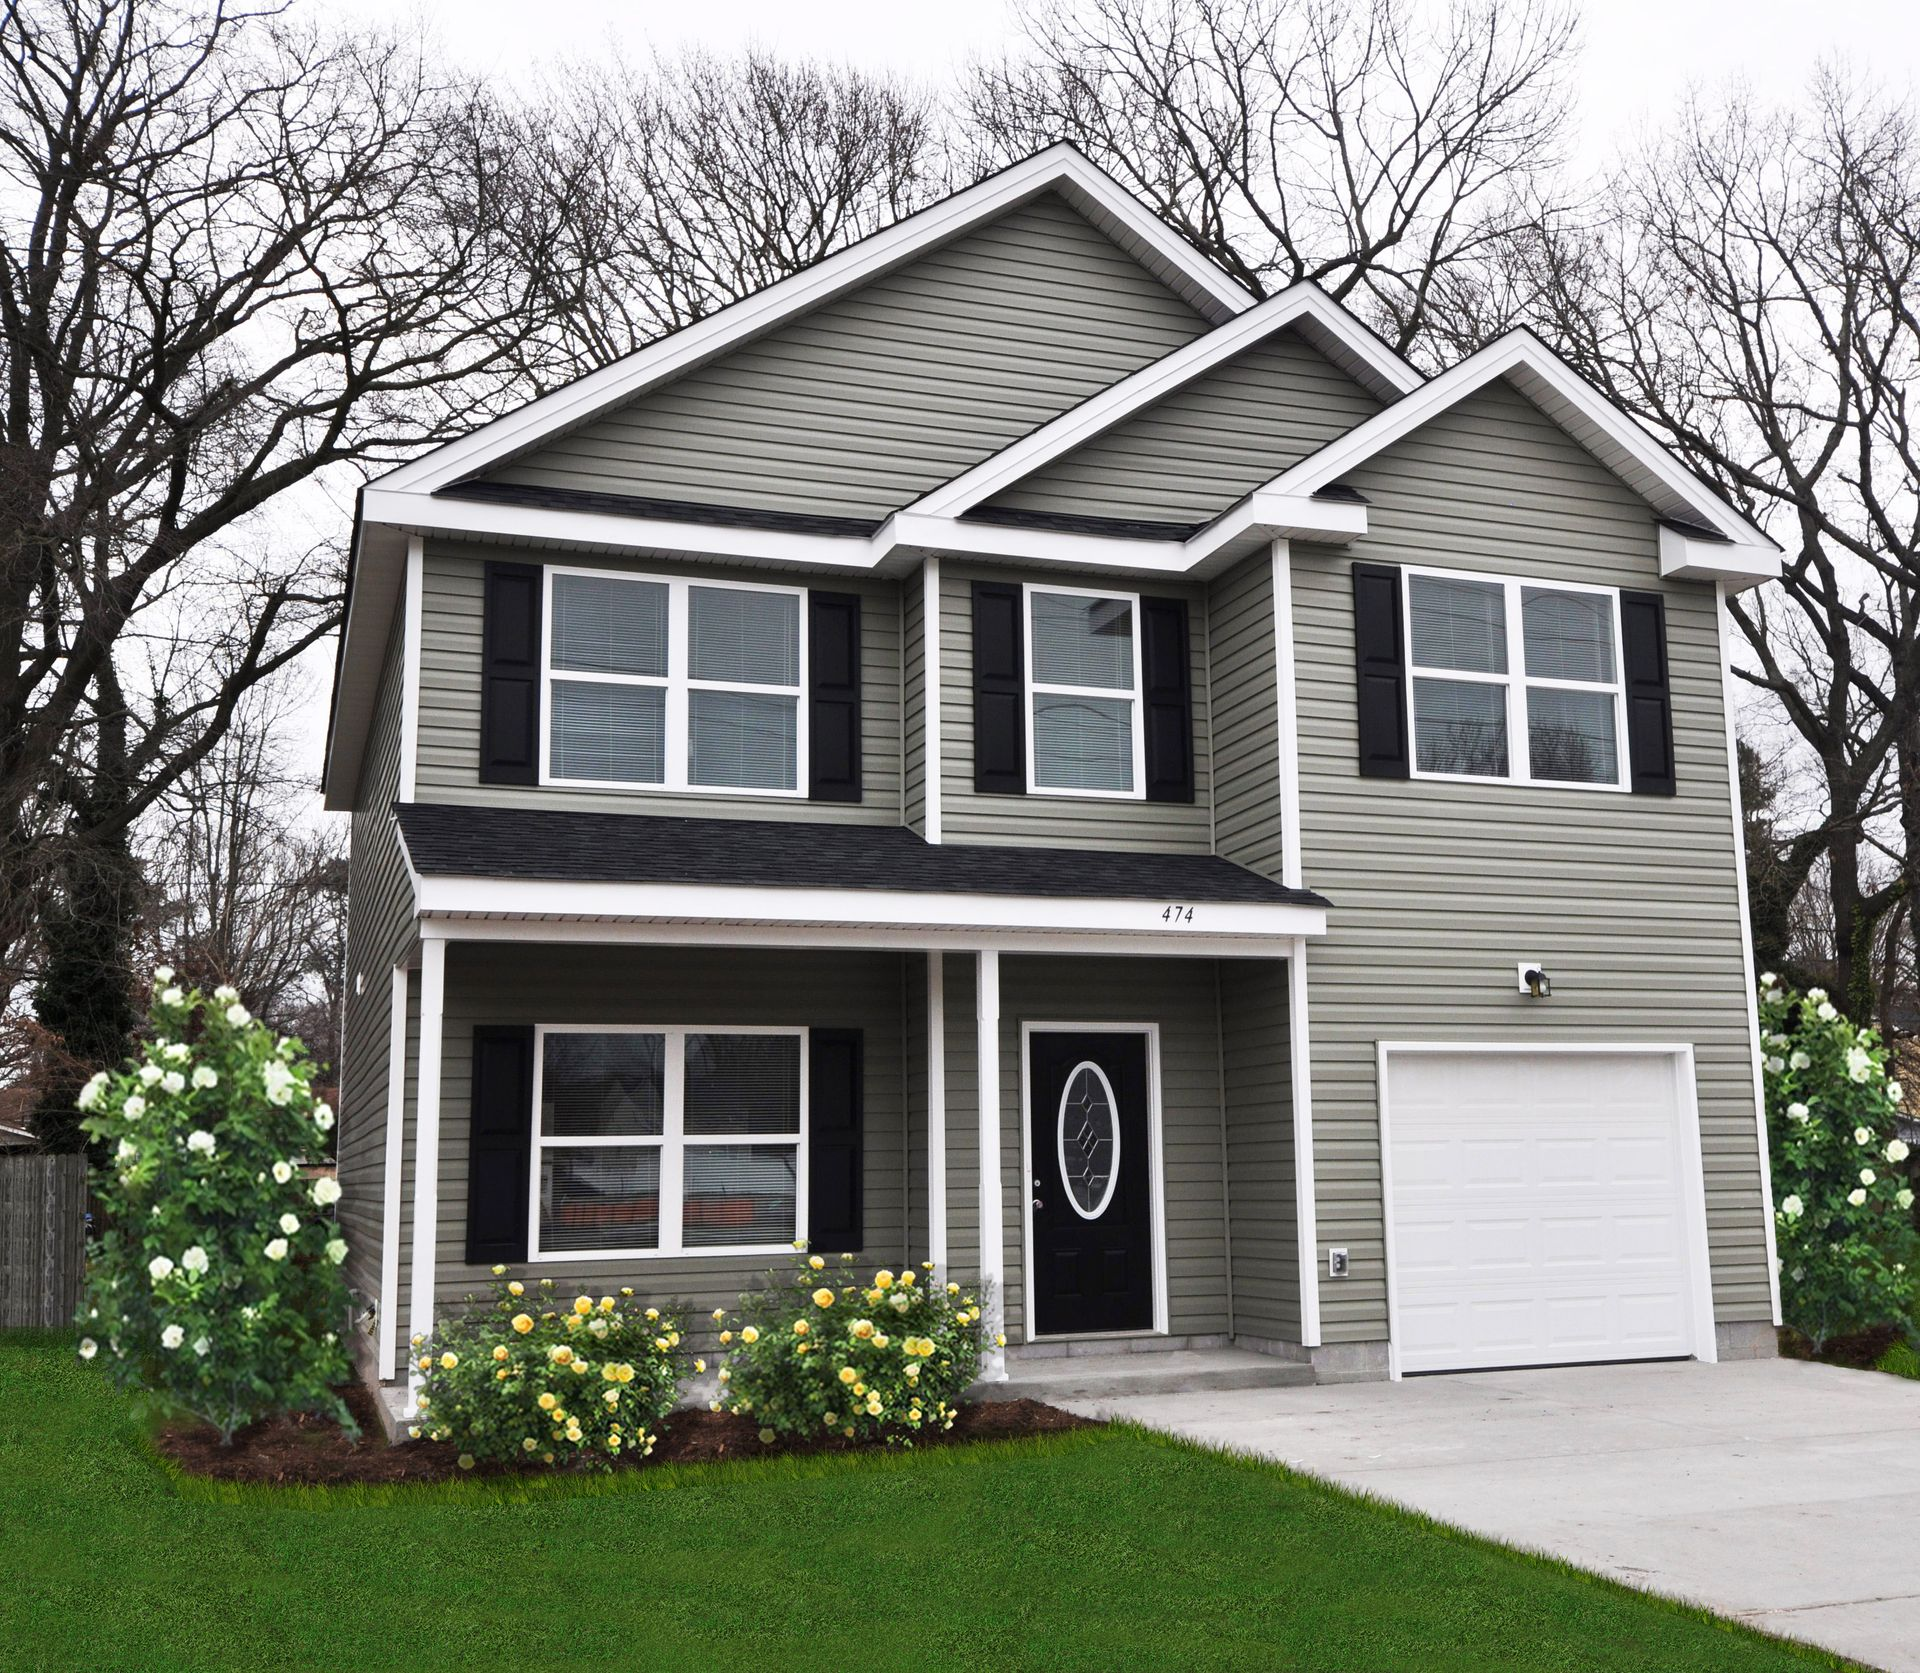 Magnolia plan chesapeake virginia 23320 magnolia plan at the magnolia plan chesapeake virginia 23320 magnolia plan at the cottages at norfolk highlands by wetherington homes malvernweather Image collections